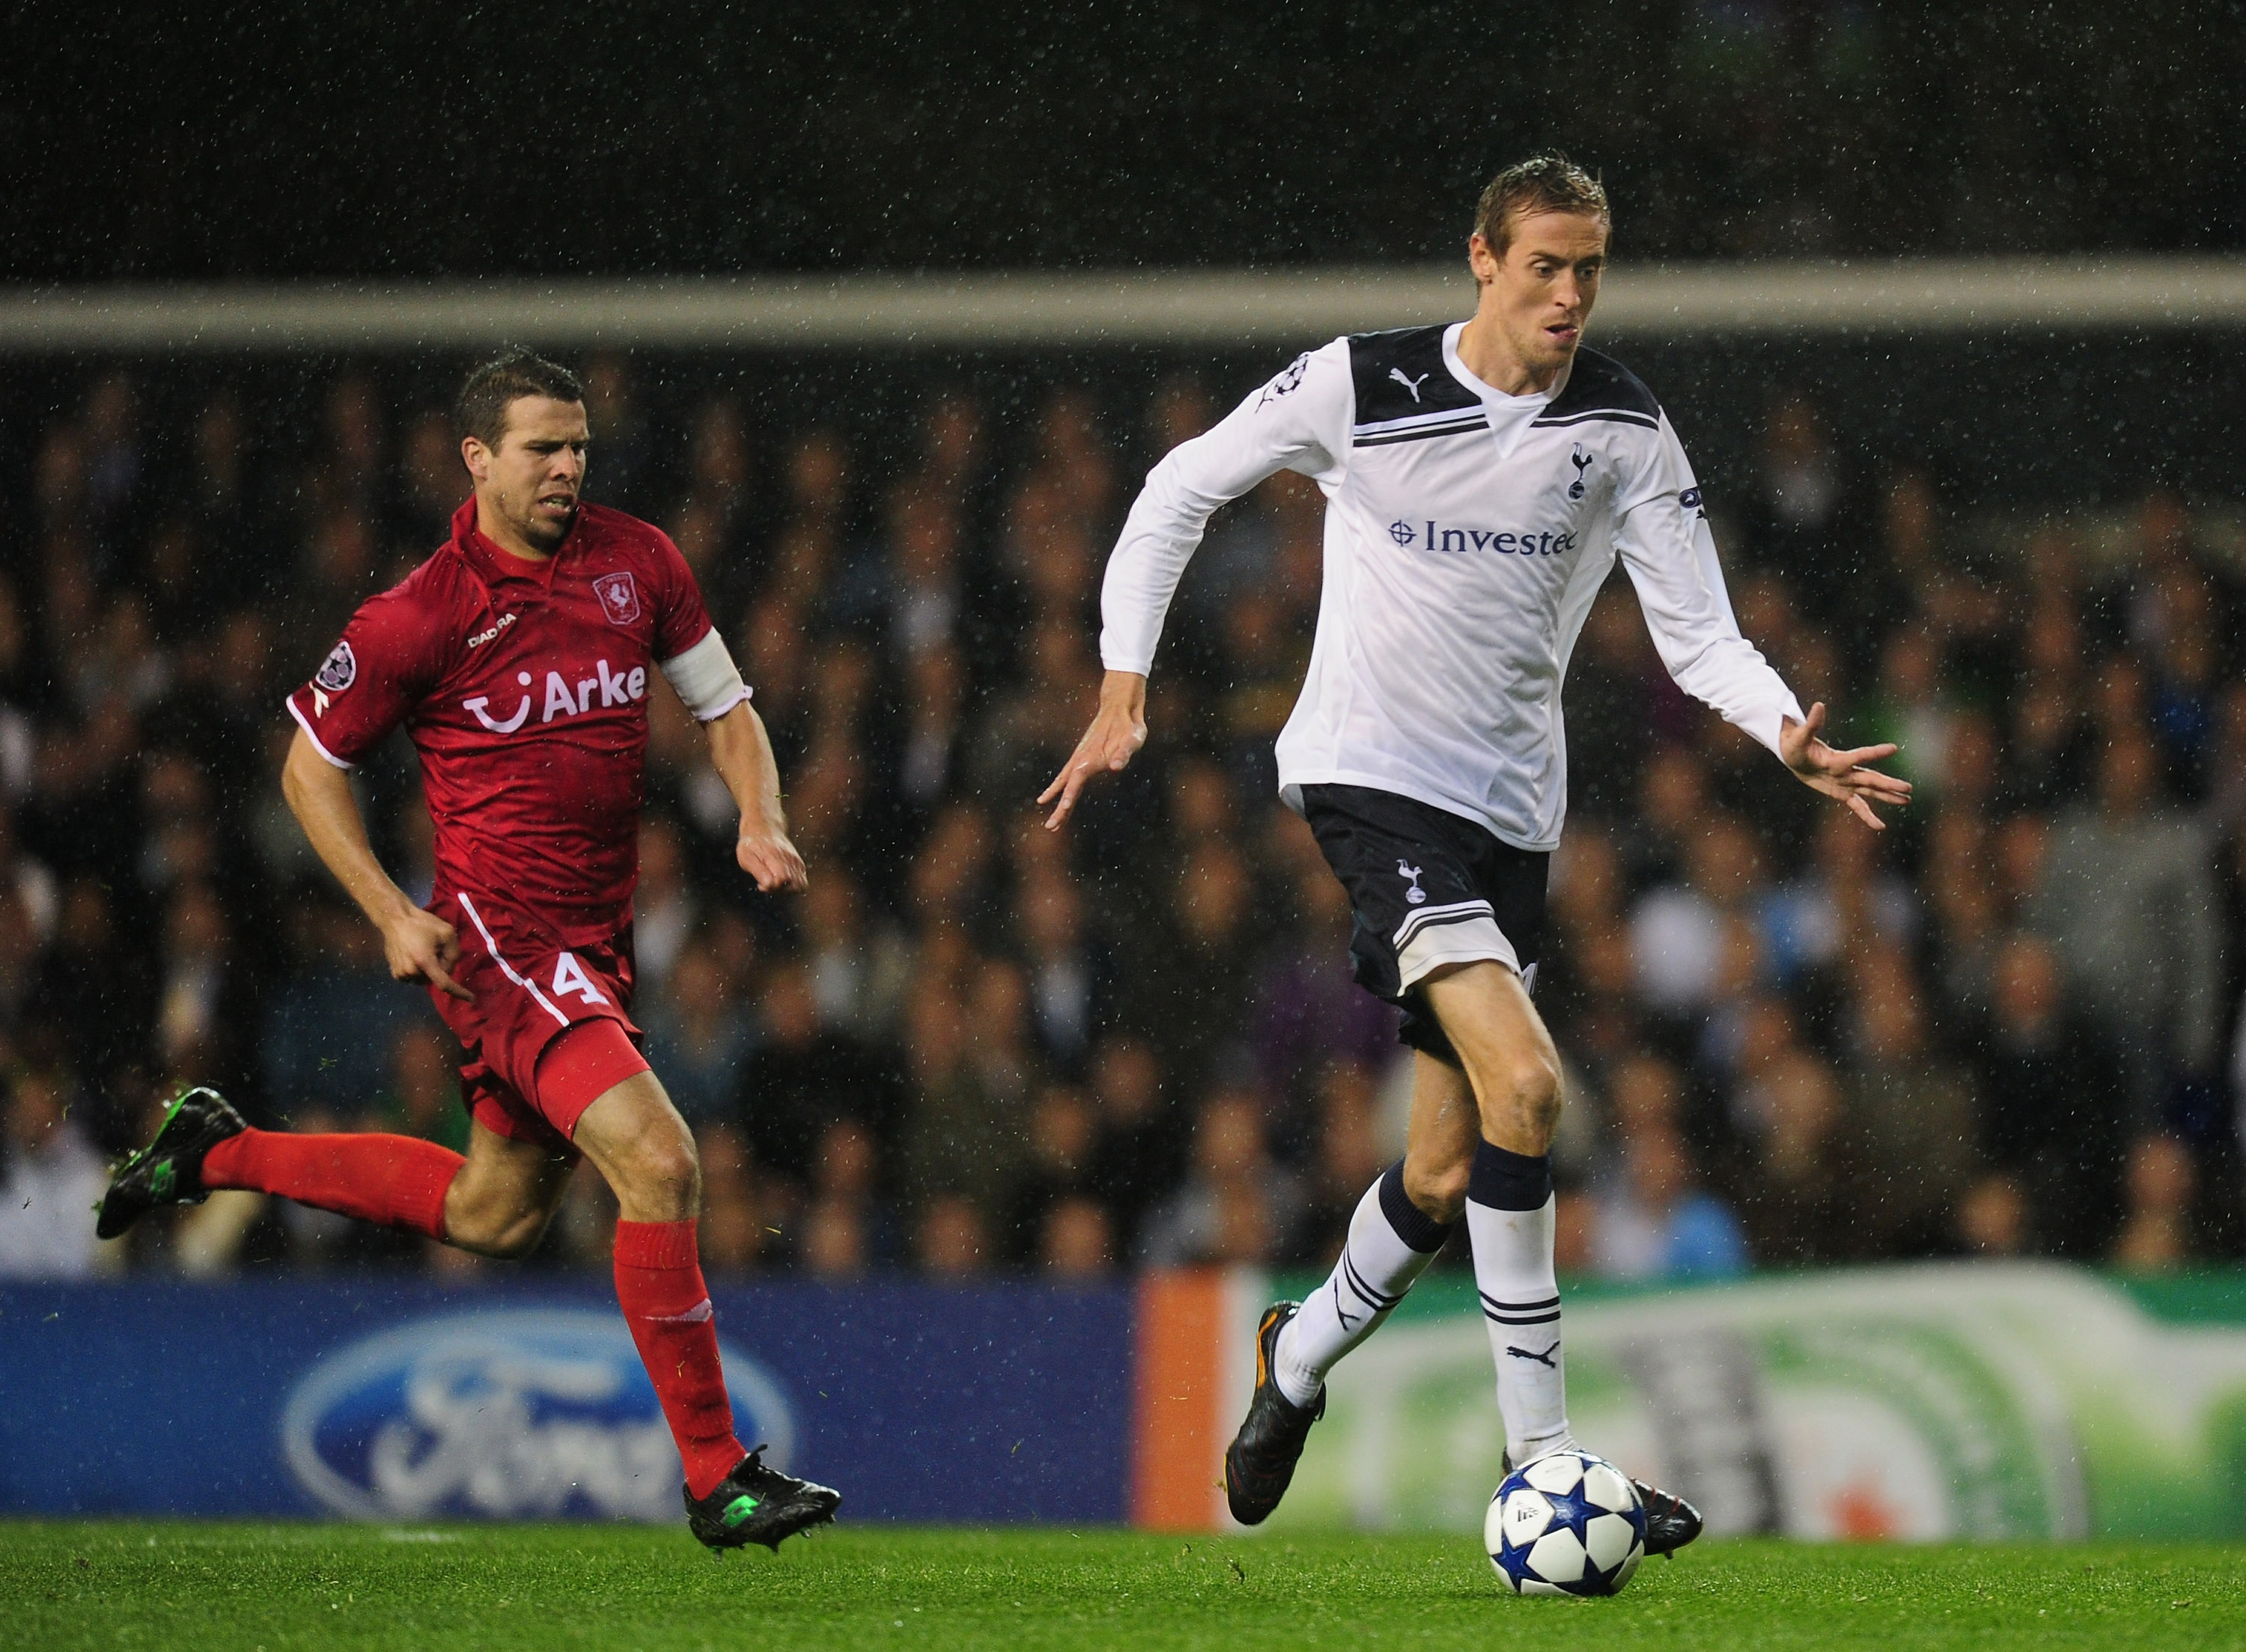 LONDON, ENGLAND - SEPTEMBER 29:  Peter Crouch of Tottenham is chased by Peter Wisgerhof of FC Twente looks on during the  UEFA Champions League Group A match between Tottenham Hotspur and FC Twente at White Hart Lane on September 29, 2010 in London, Engla